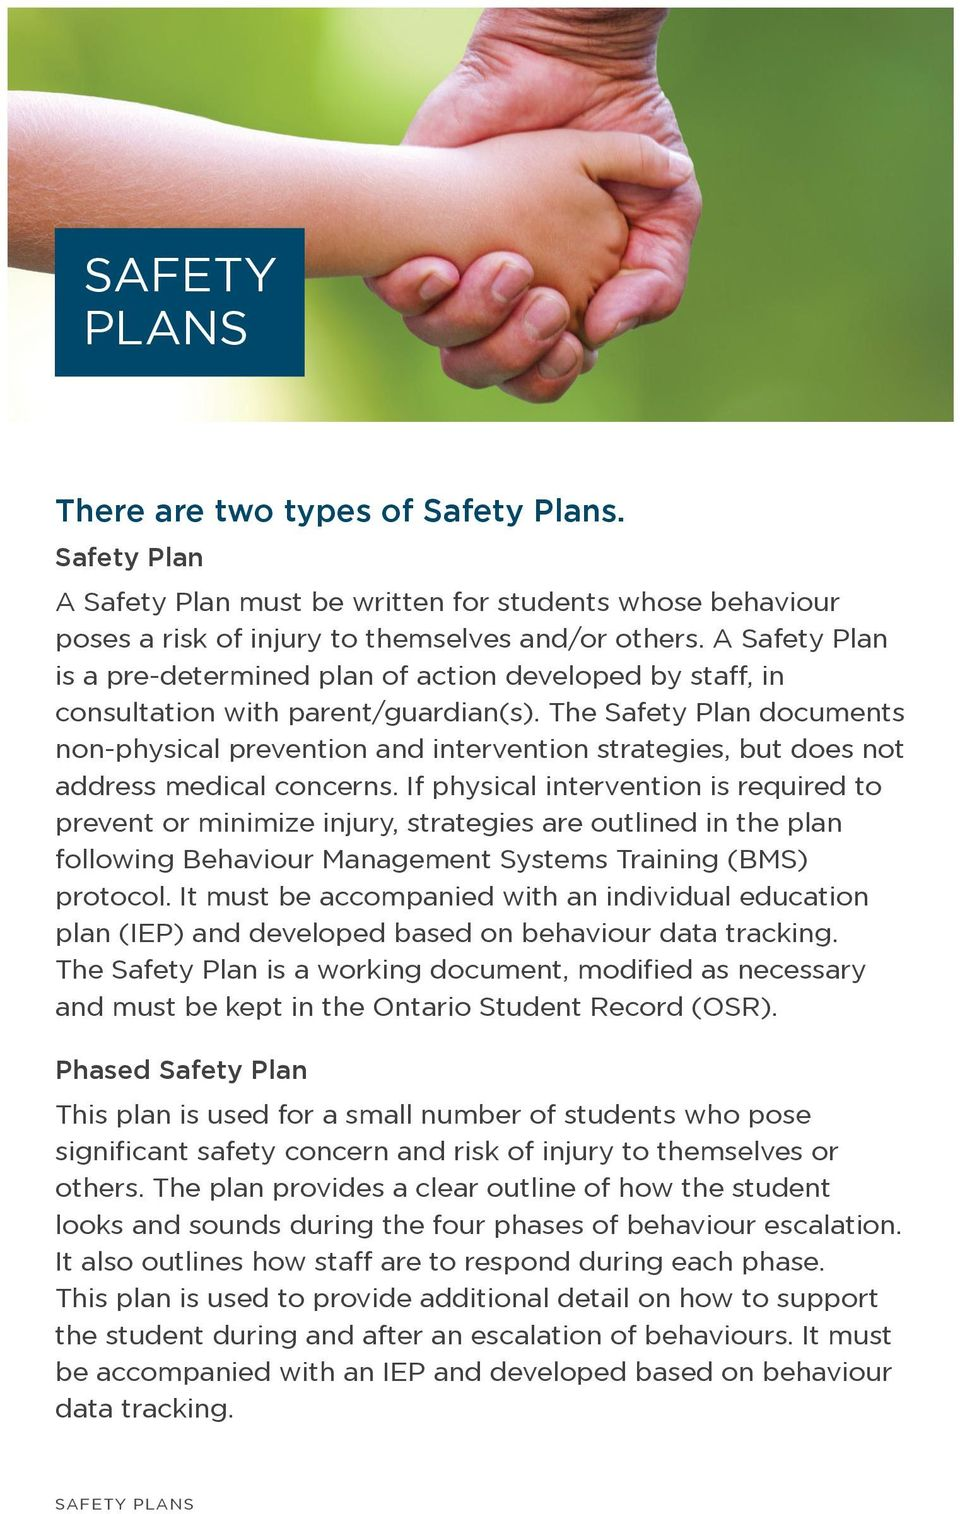 The Safety Plan documents non-physical prevention and intervention strategies, but does not address medical concerns.